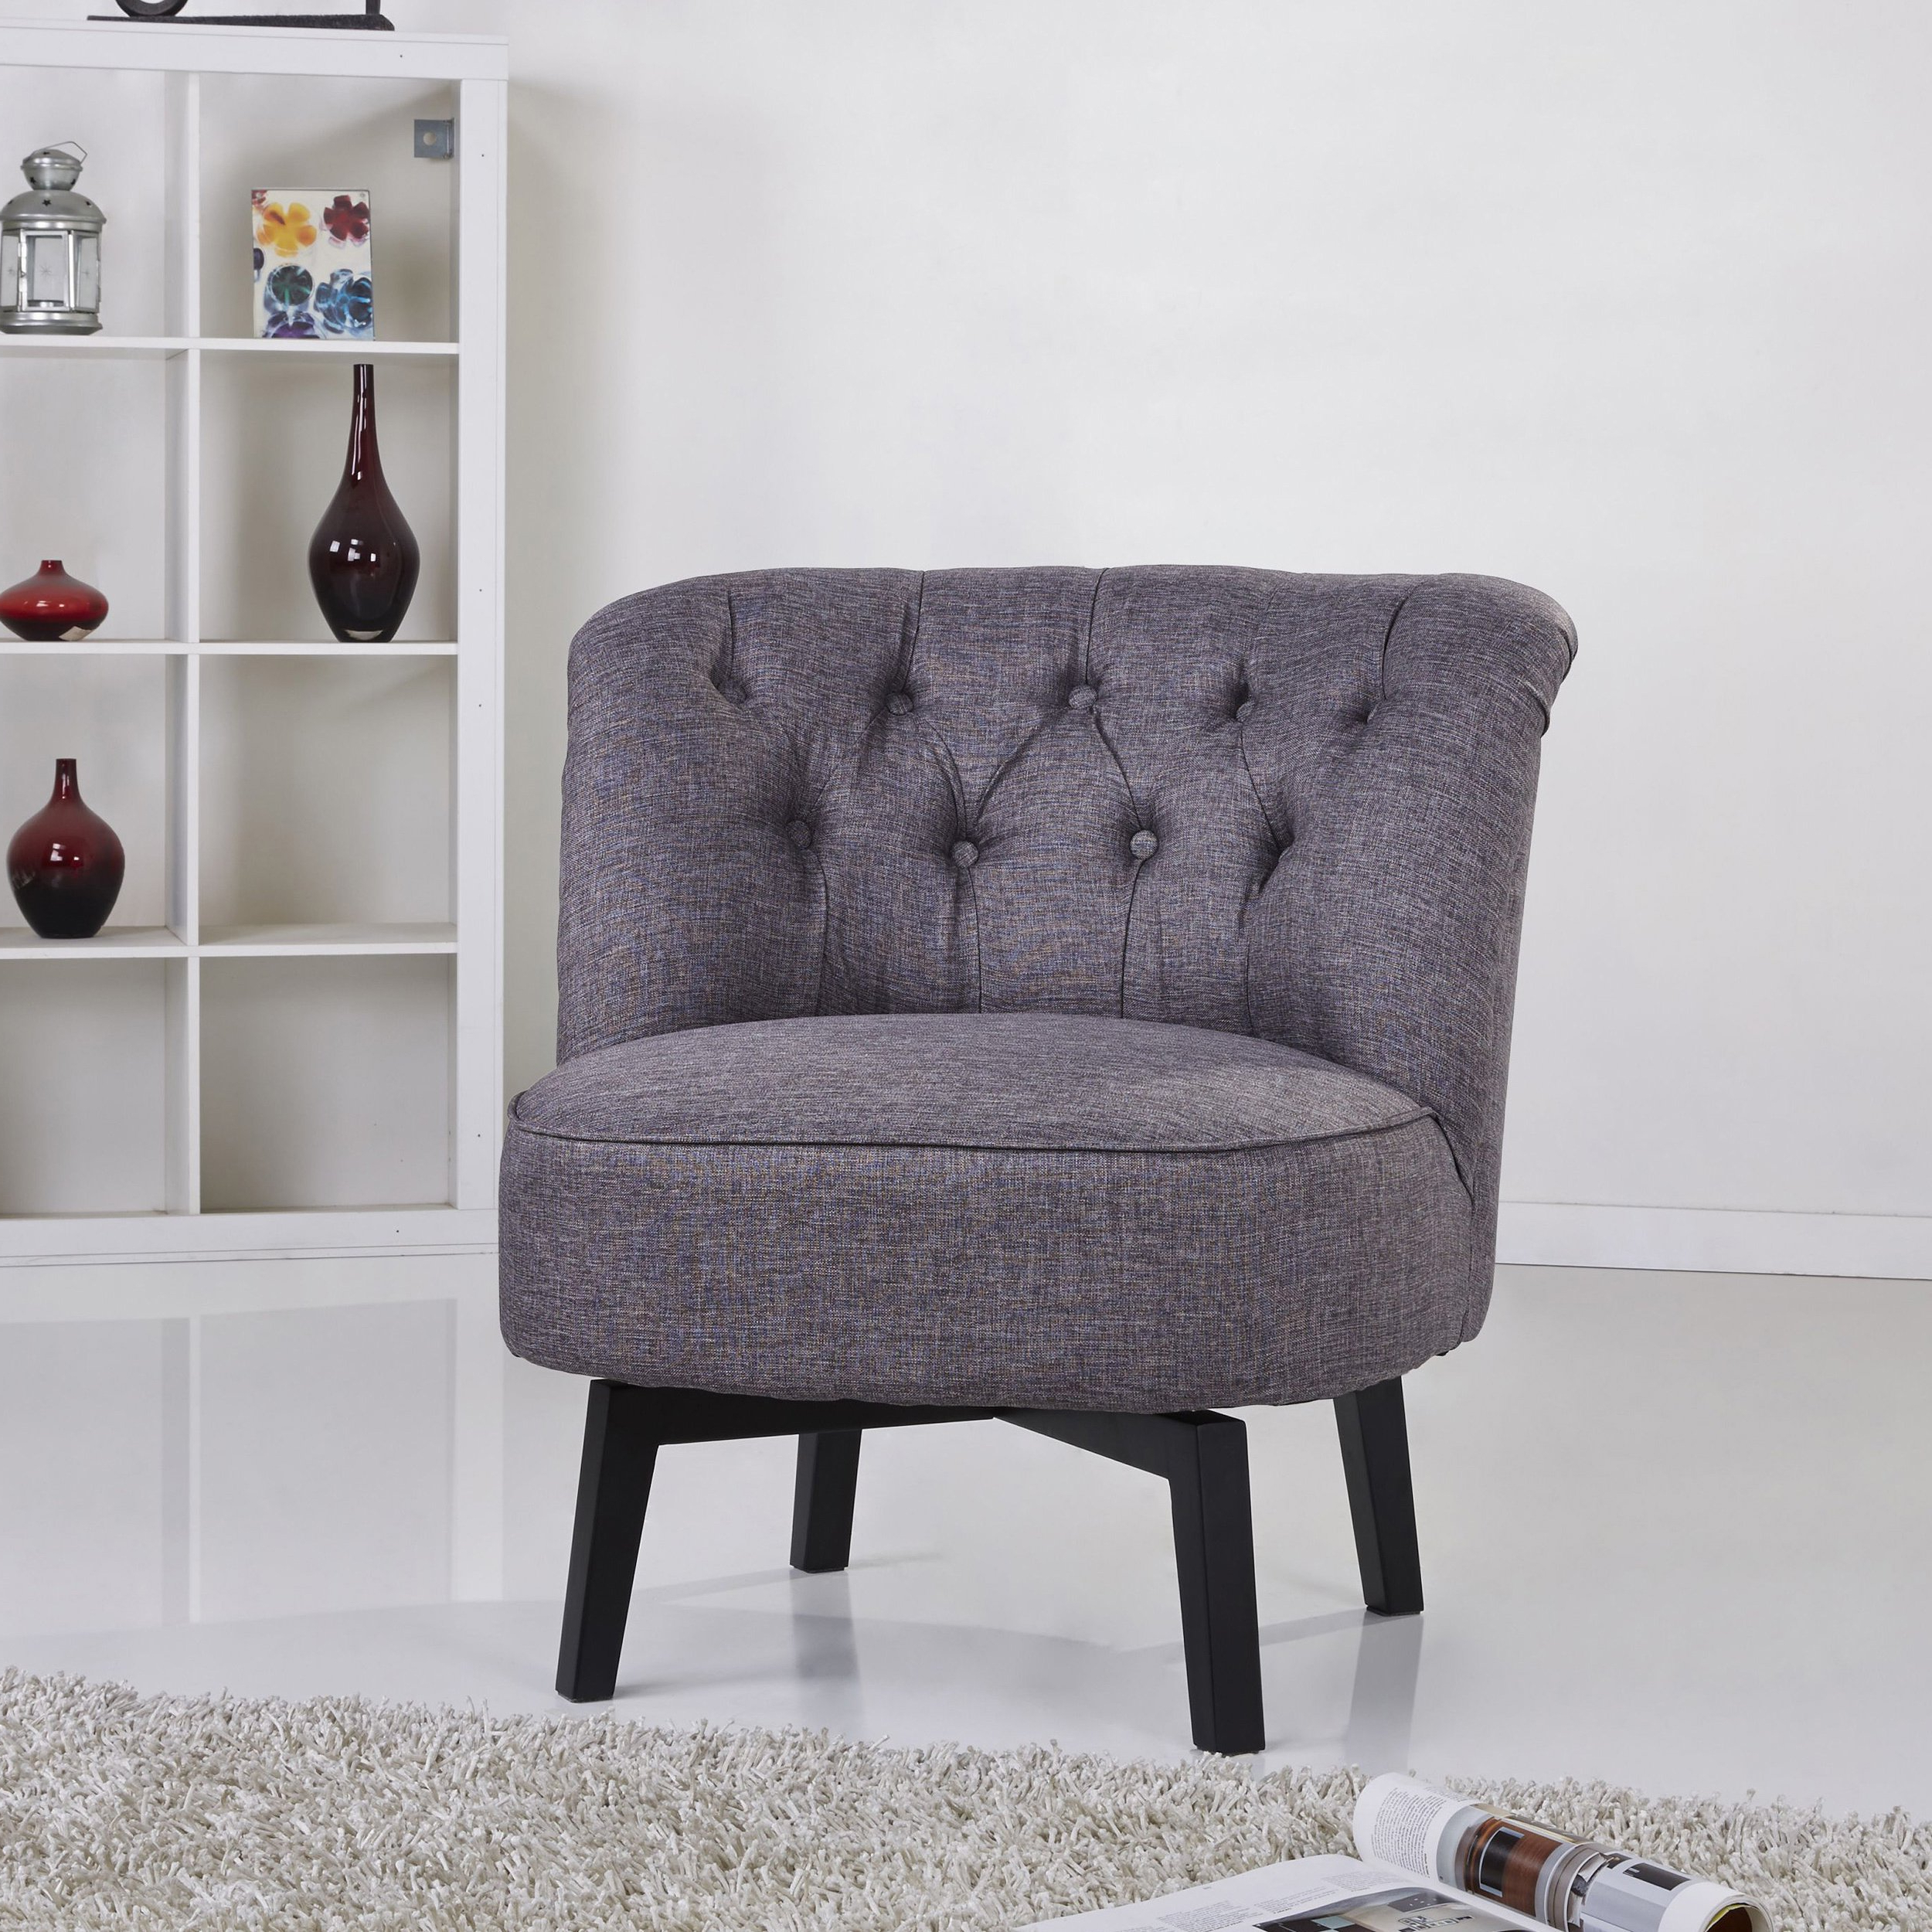 Most Popular Dark Grey Swivel Chairs In Shop Gold Sparrow Raleigh Dark Grey Swivel Chair – Free Shipping (View 20 of 20)